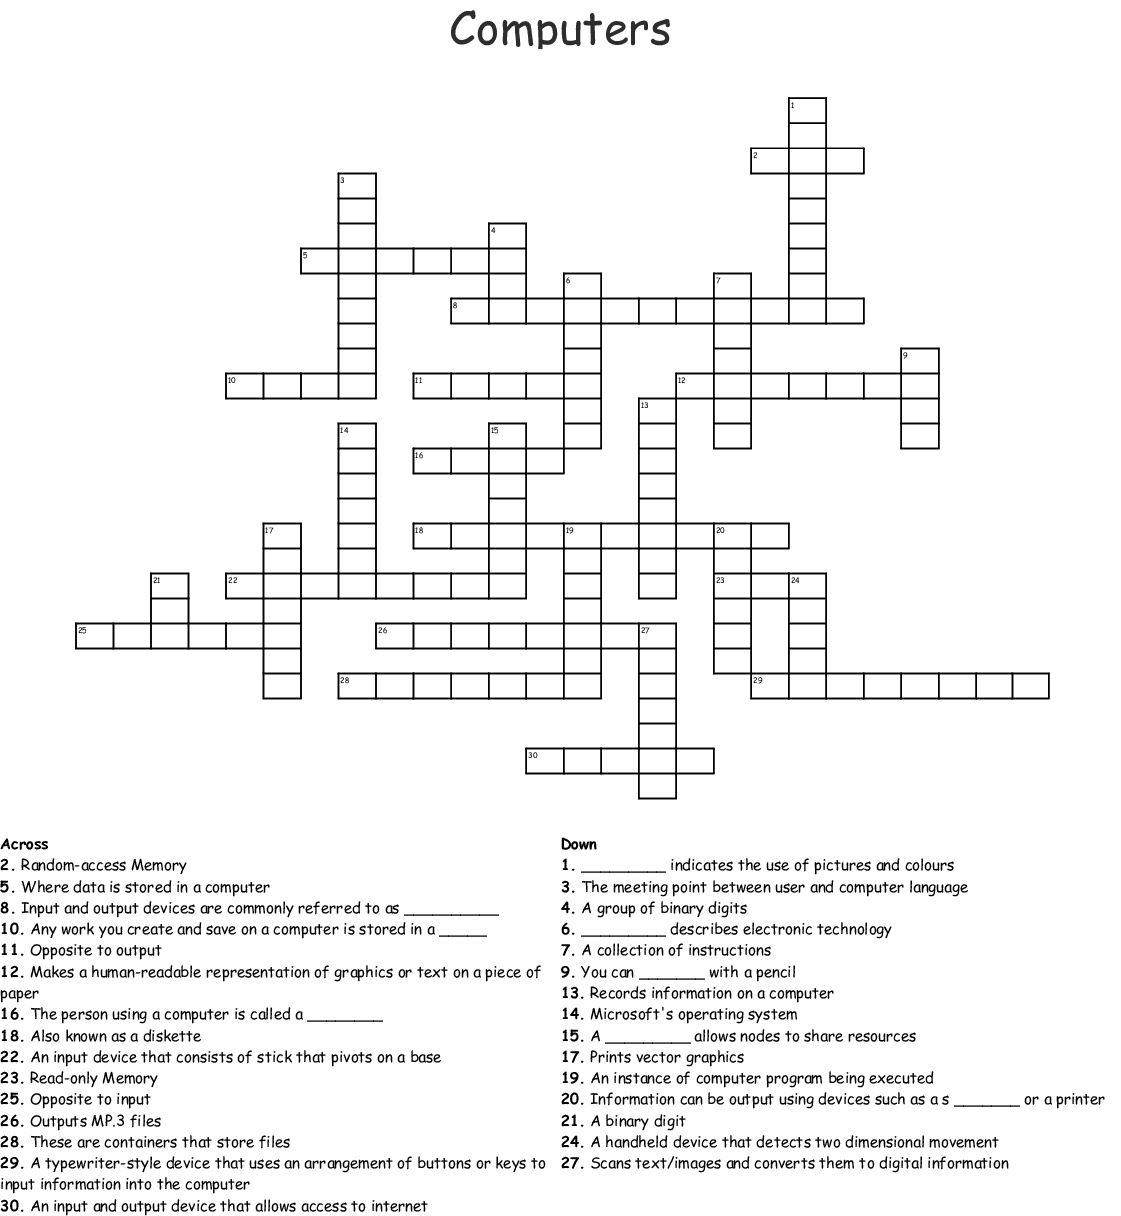 Computer Hardware Crosswords Word Searches Bingo Cards